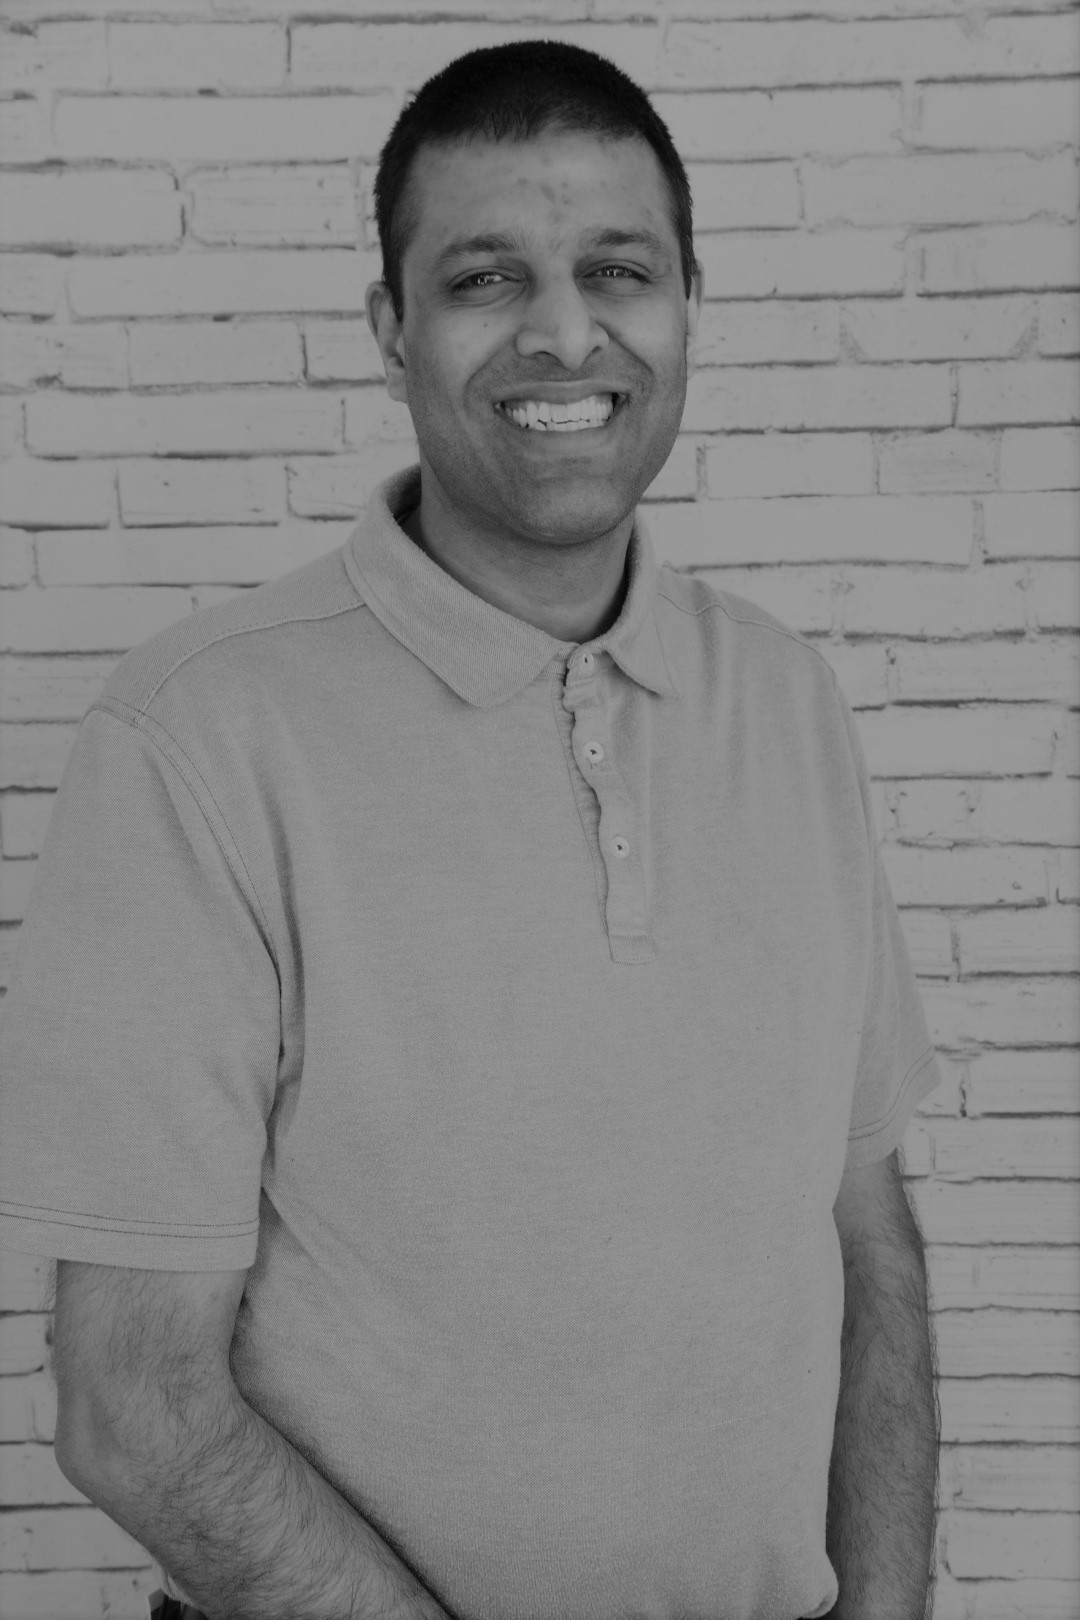 Principal Staff Electrical Engineer  Sanjay is a highly experienced electrical engineer with an audio systems engineering background from over nine years of working at Motorola Mobility. He has experience in audio compliance testing and debug support, component selection, electrical PCB design, and Cirrus Logic and Audio architecture. At Motorola, he was an SME and technical liaison for Acoustic design guidance. He also brings experience in project management, supply chain, and leading cross-functional teams. He holds a patent for adaptive acoustic echo control over speakerphone. Sanjay brings a vast amount of knowledge to round out the MPC electrical engineering team.